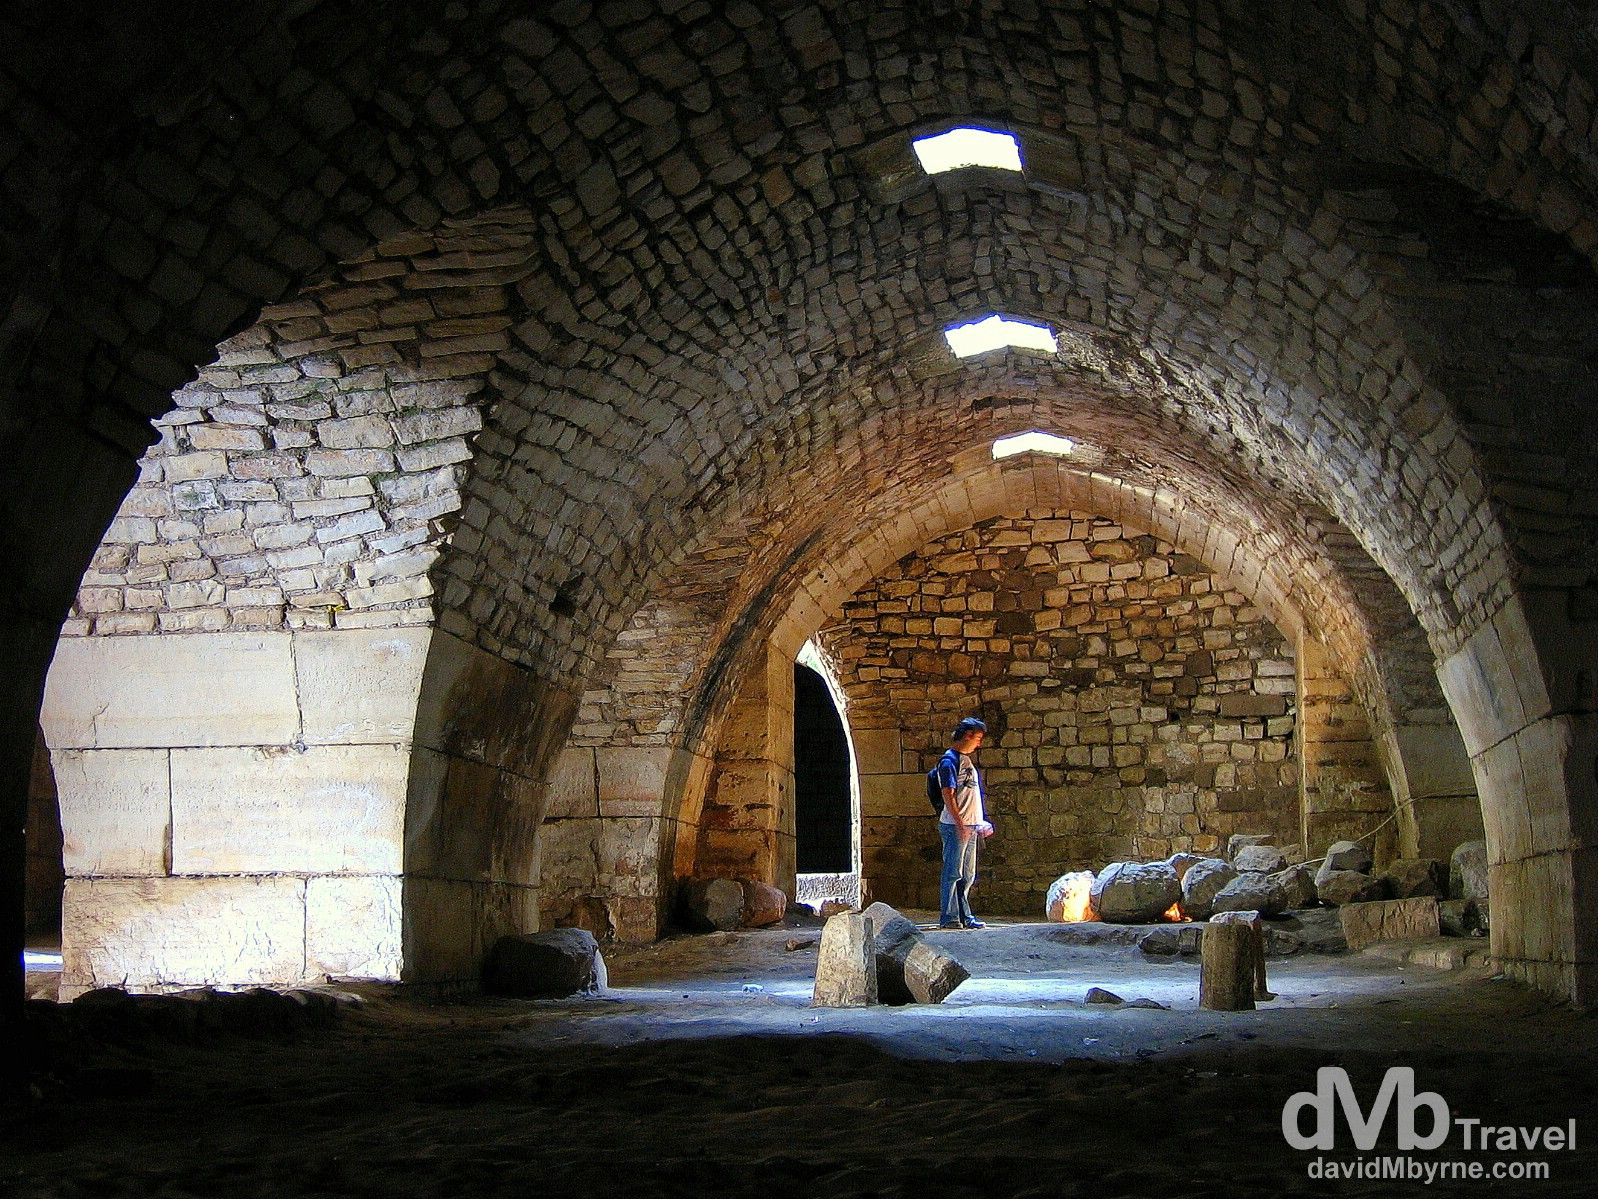 Inside one of the cavernous corridors of the old Crusader castle Crac des Chevaliers in Syria. May 7, 2008.